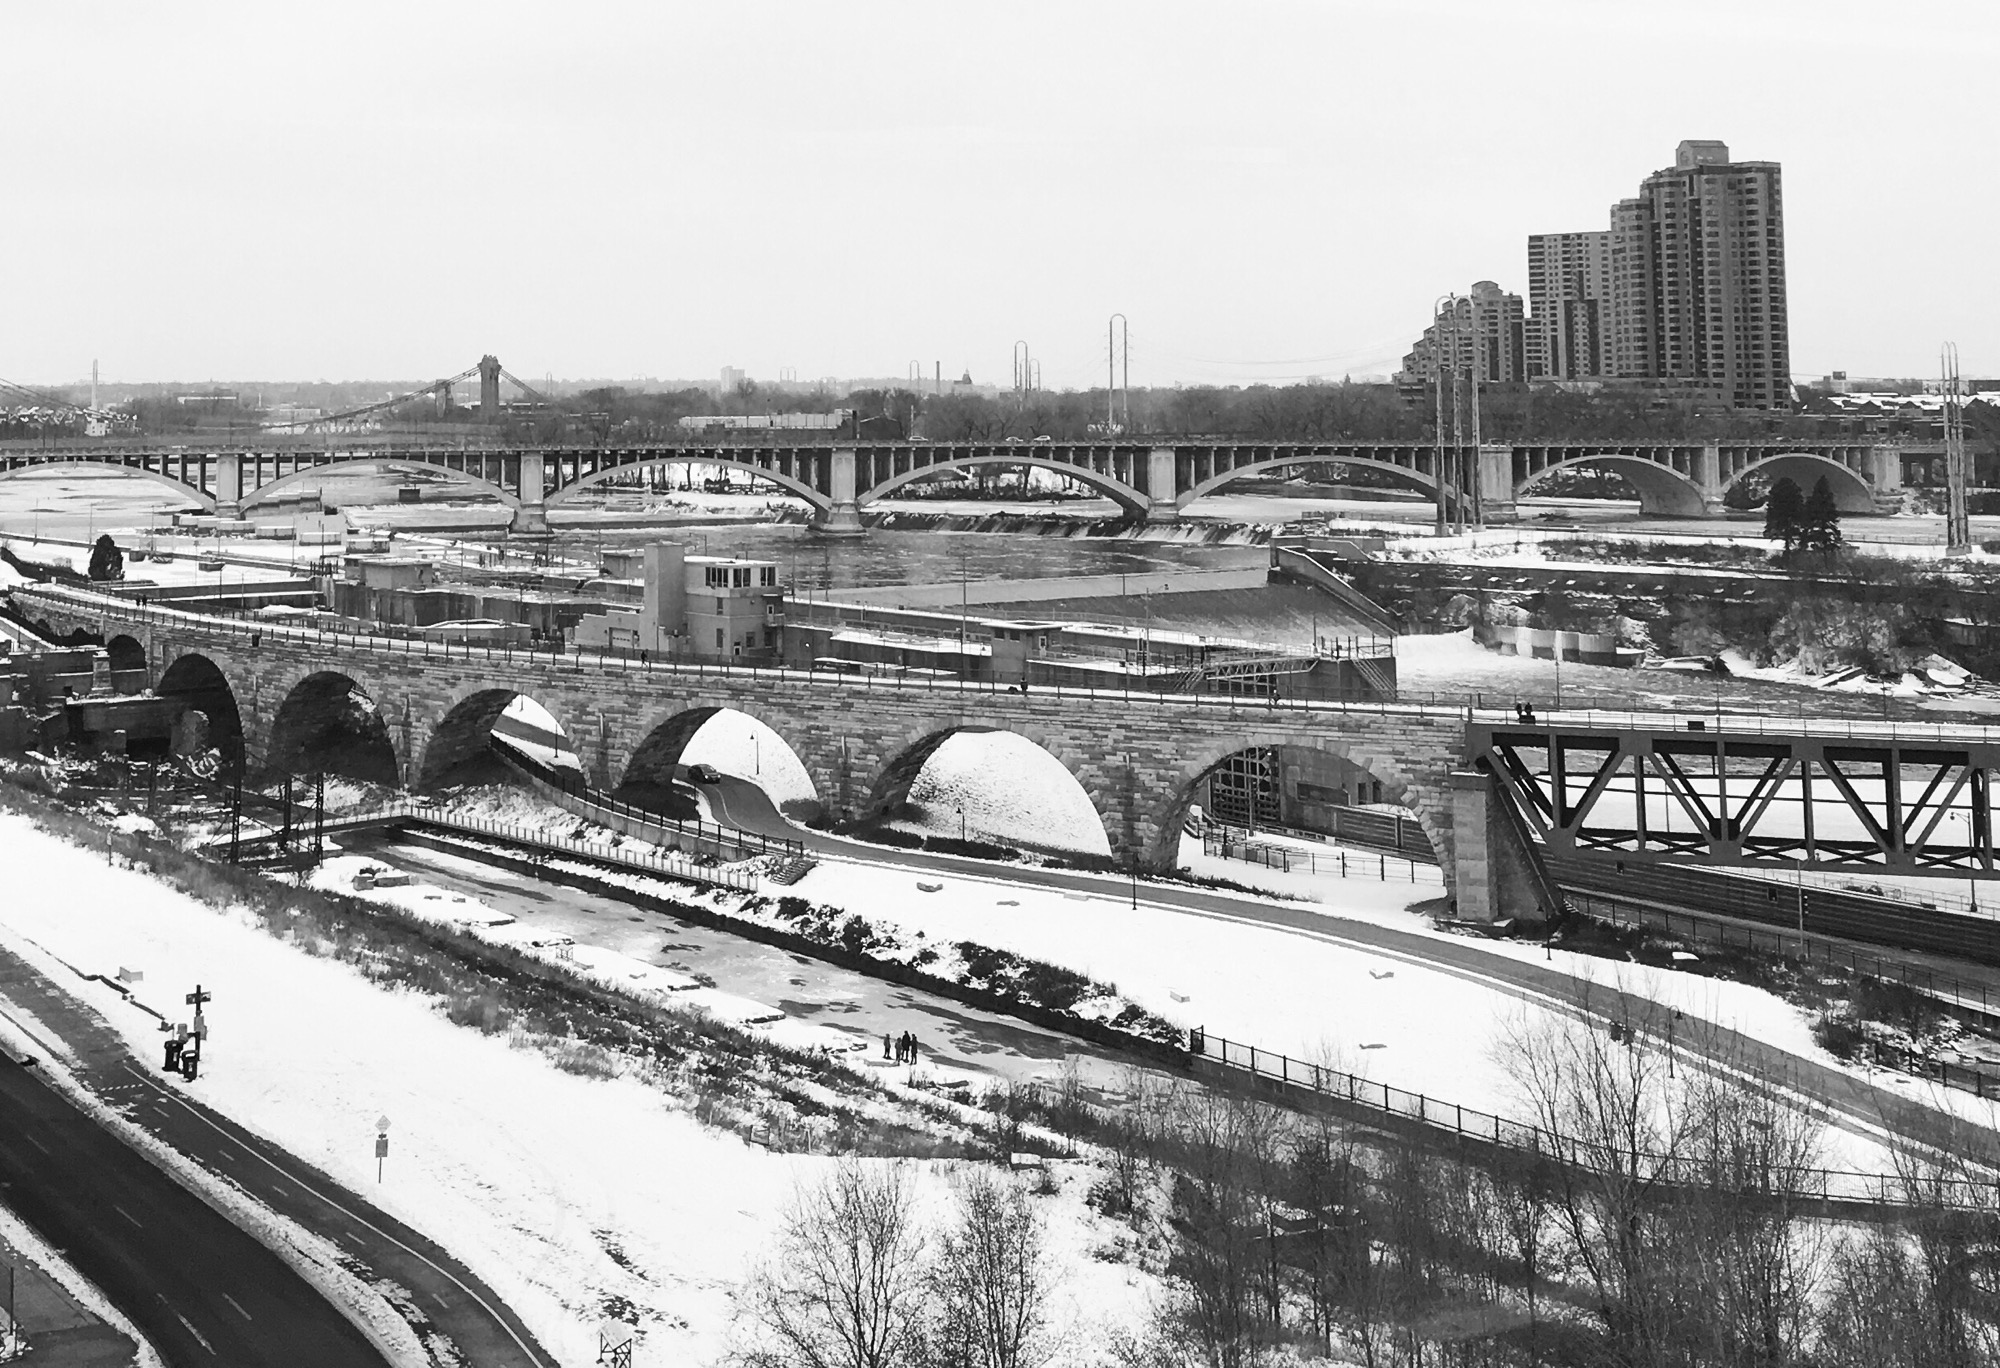 Snow, bridges (Stone Arch, Third Avenue, Hennepin), St Anthony Falls, and the Mississippi River from a high window in the Guthrie Theater